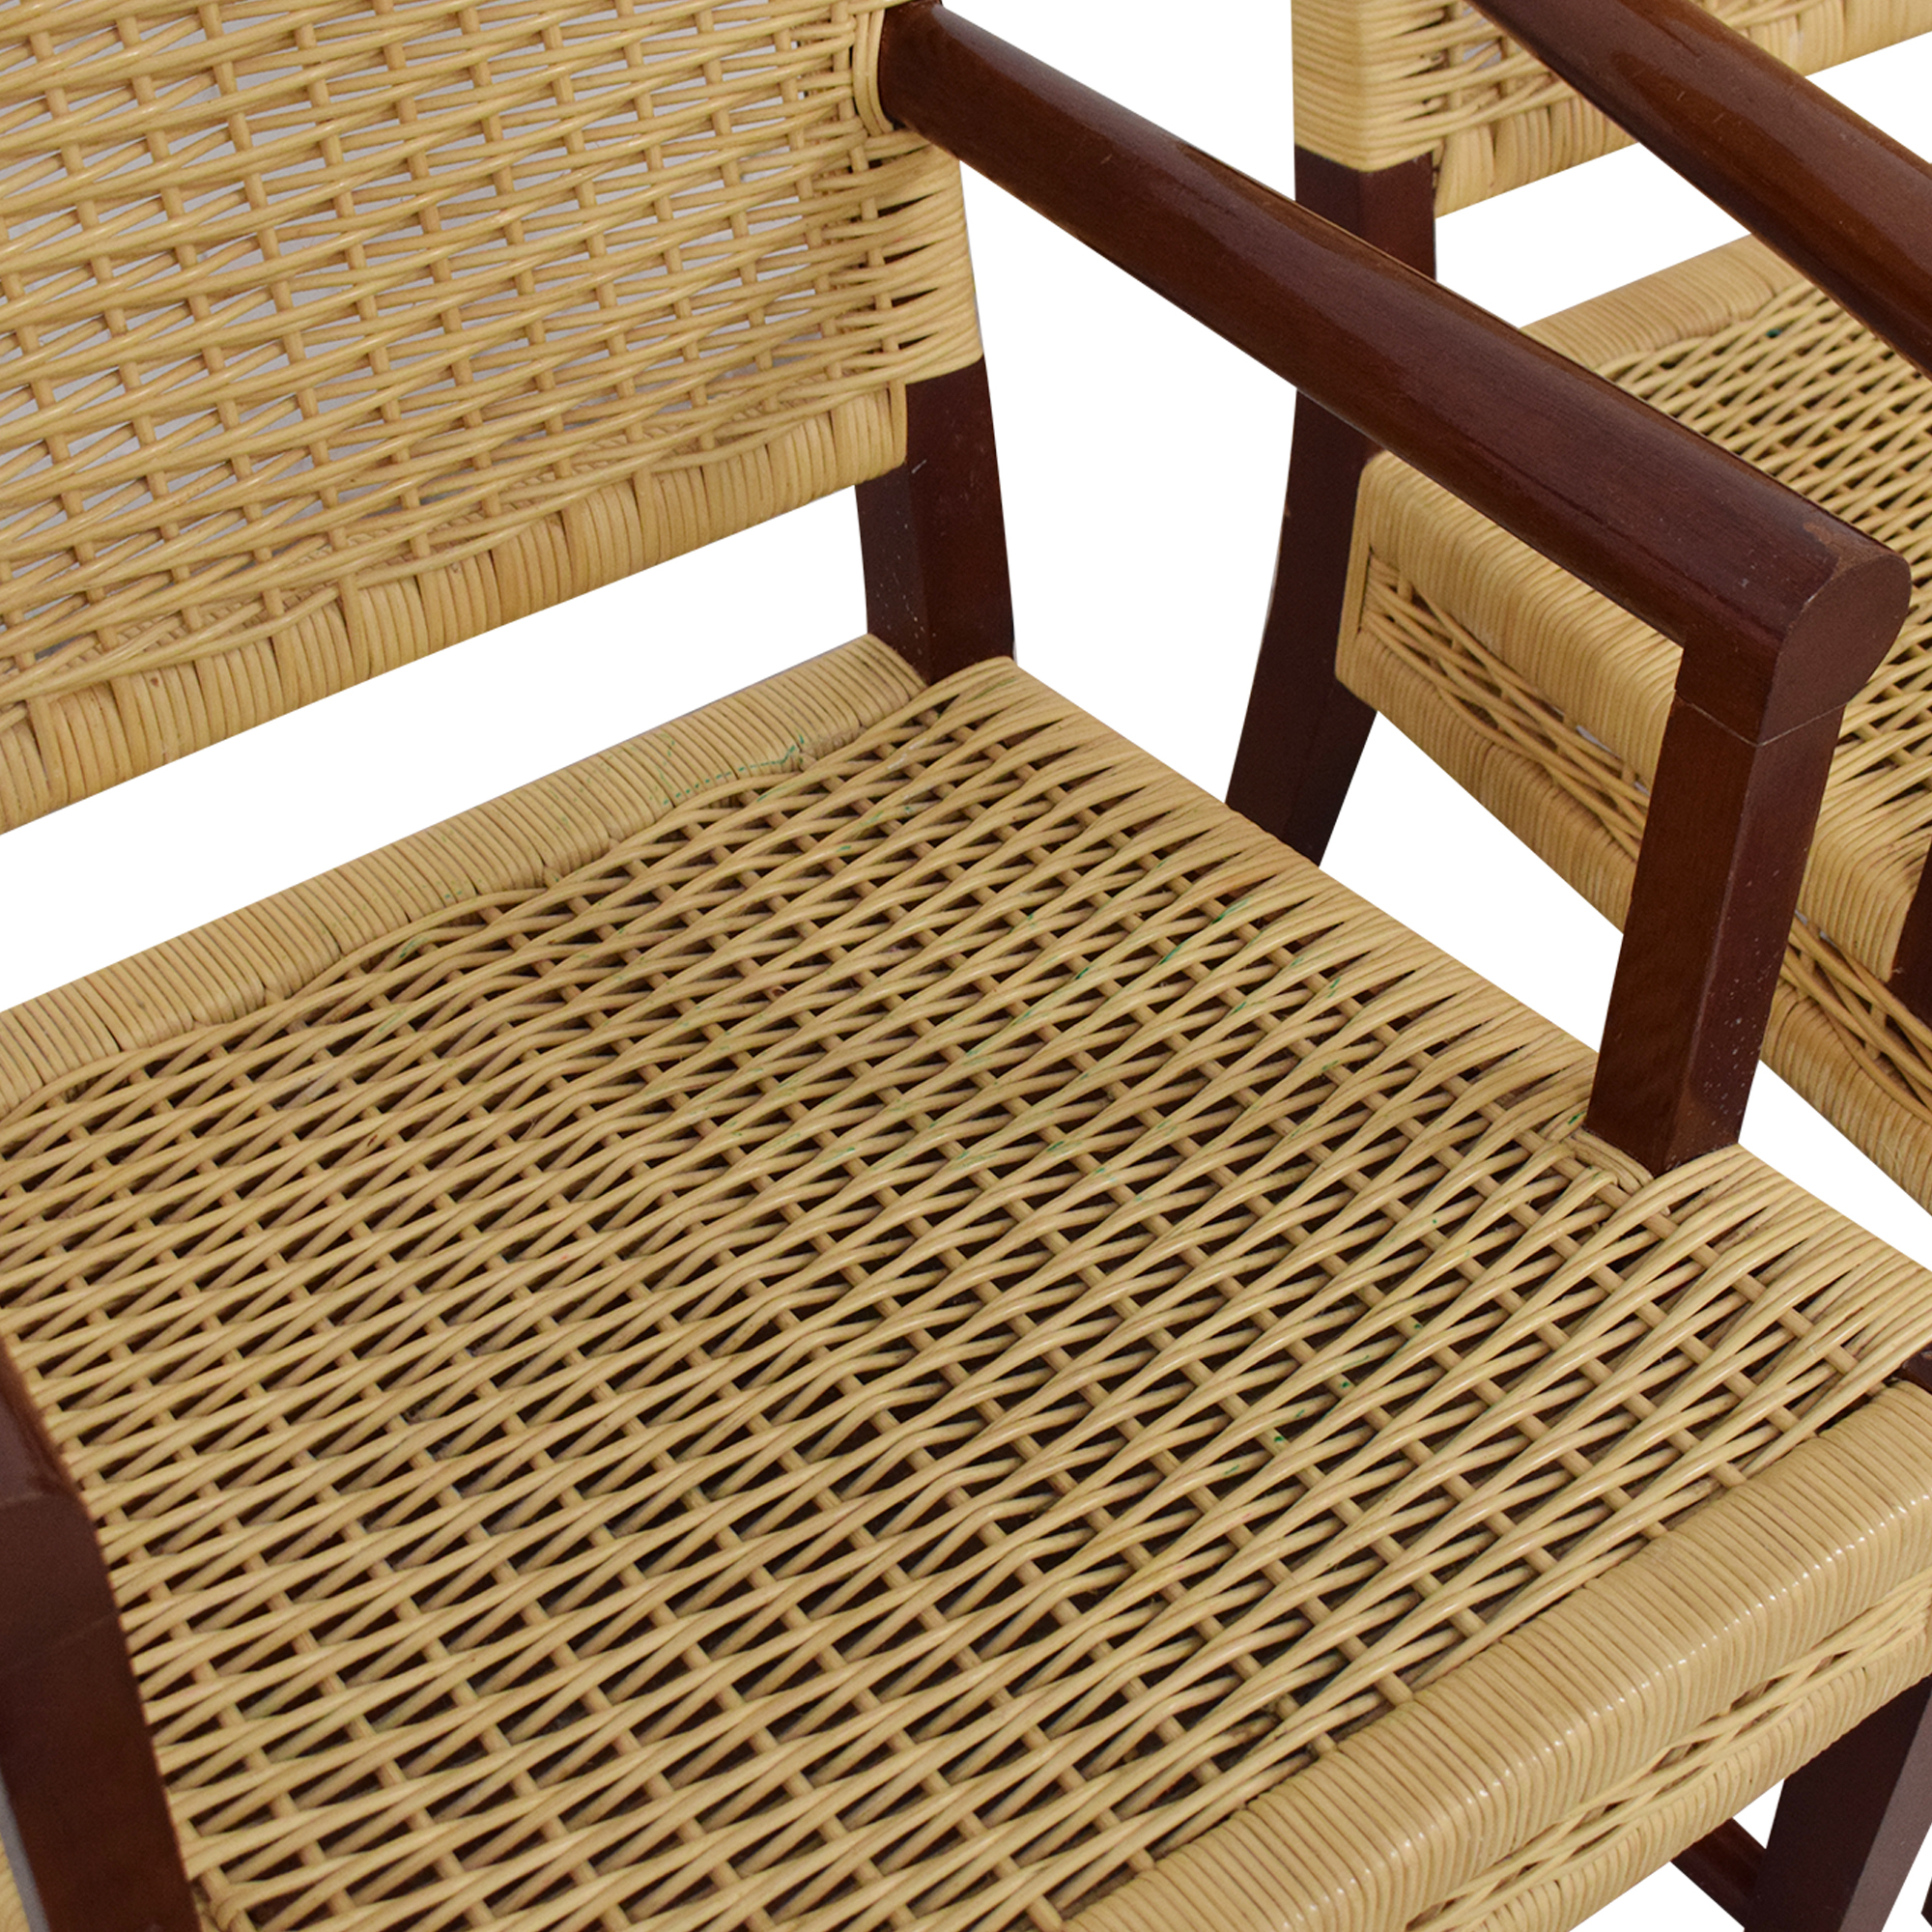 shop Donghia Dining Chairs in Merbau Wood with Raffia Weaving Donghia Chairs